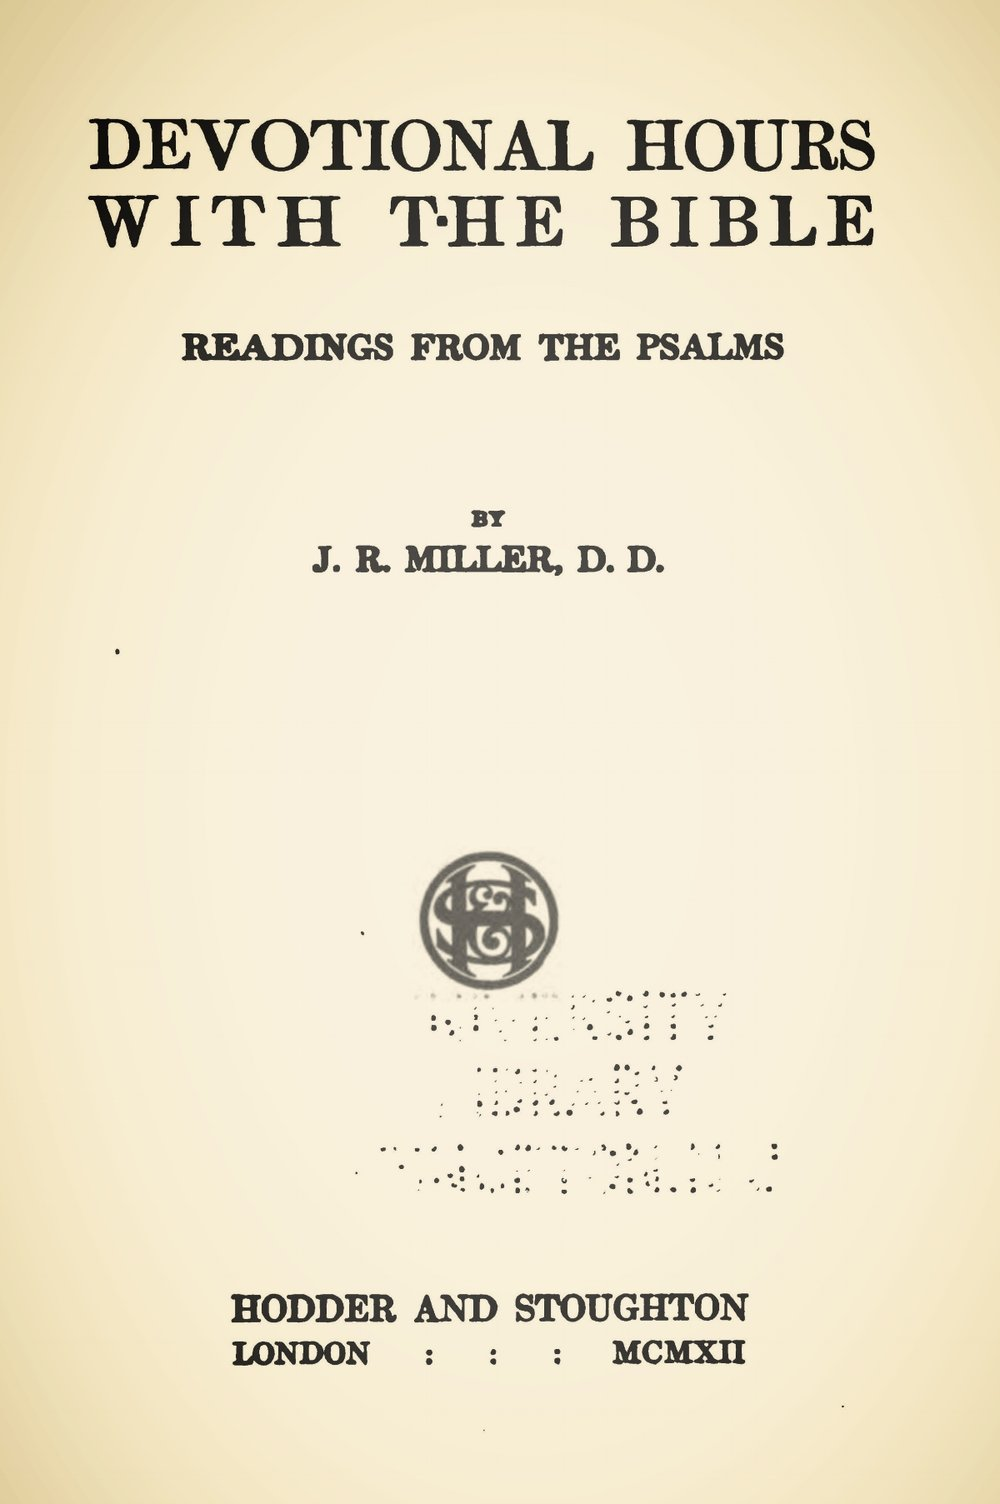 Miller, James Russell, Devotional Hours With the Bible, Vol. 6 Title Page.jpg